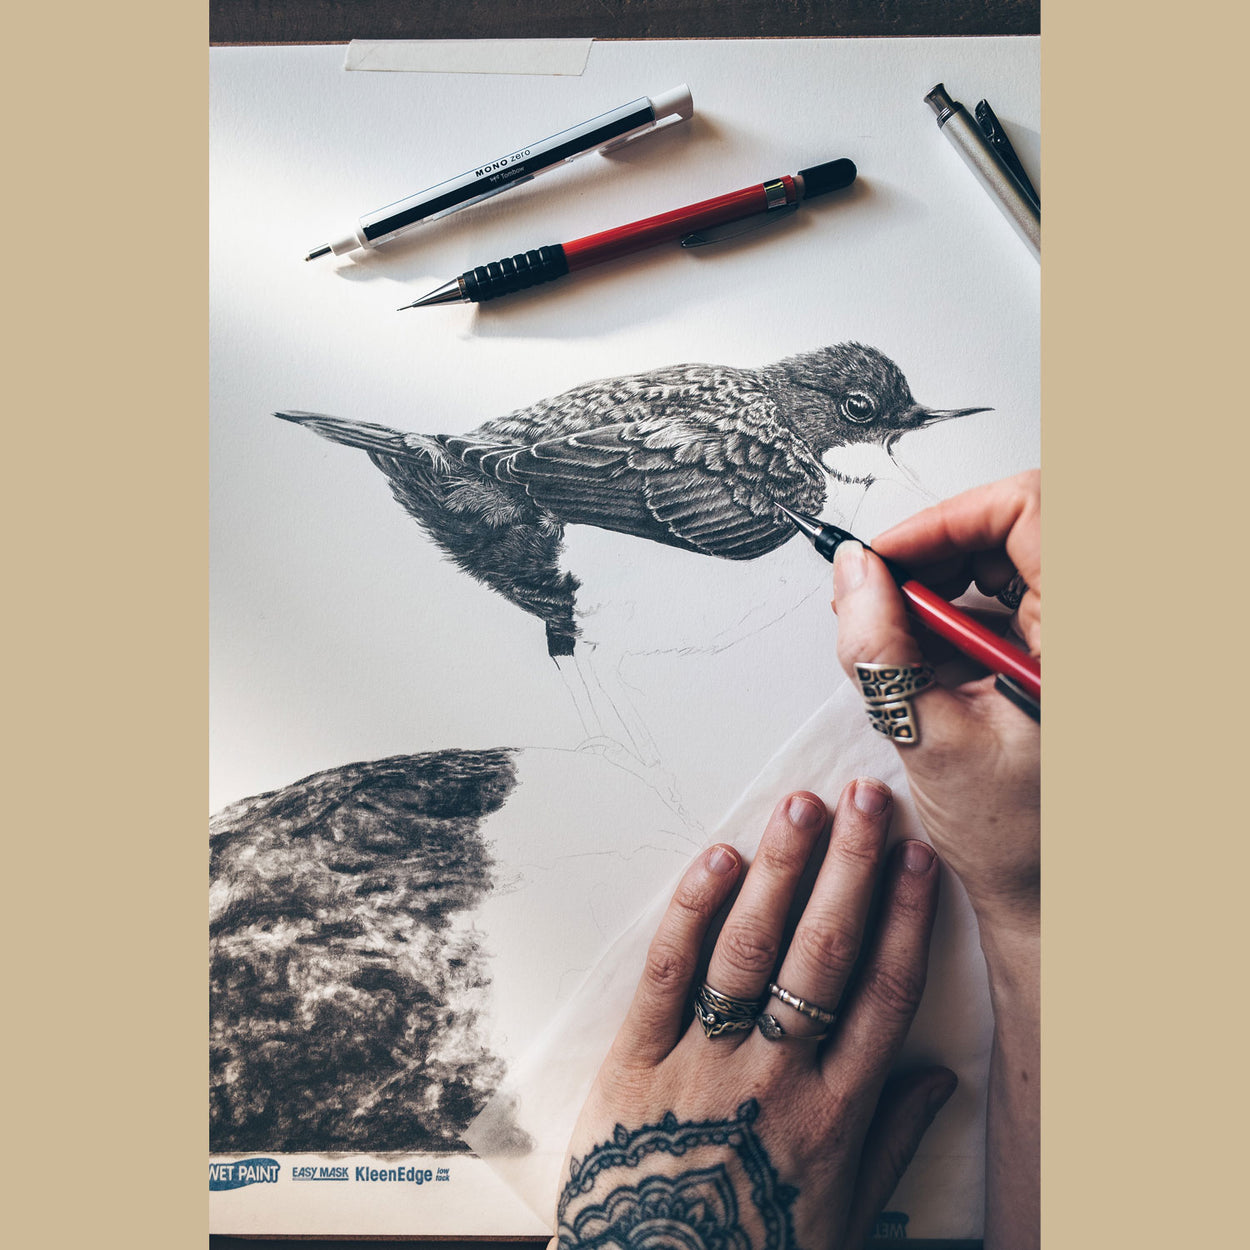 Bird Pencil Drawing in Progress - The Thriving Wild